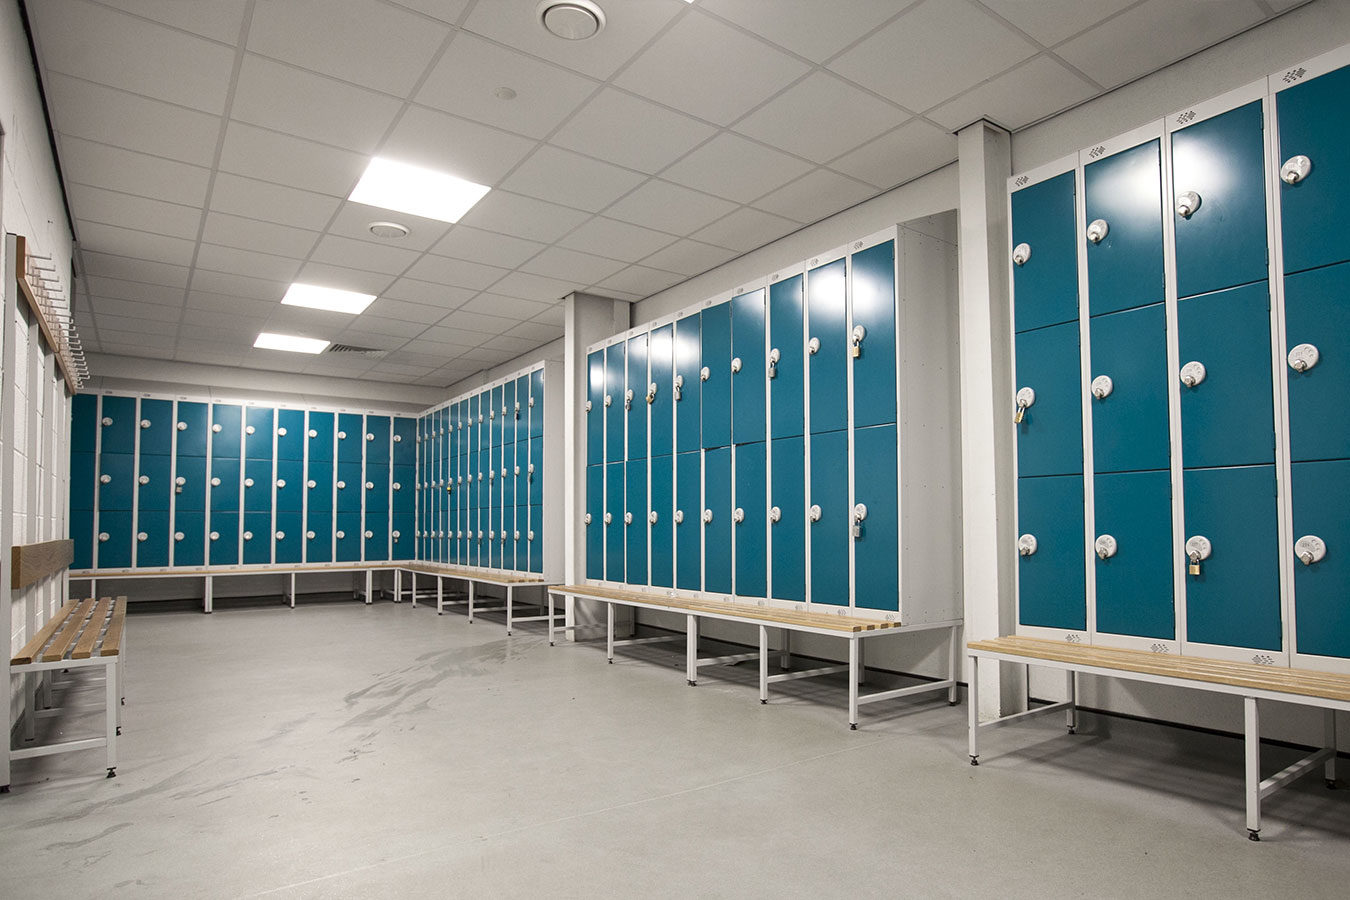 places-gym-leyland-interior-by-armex-systems-4